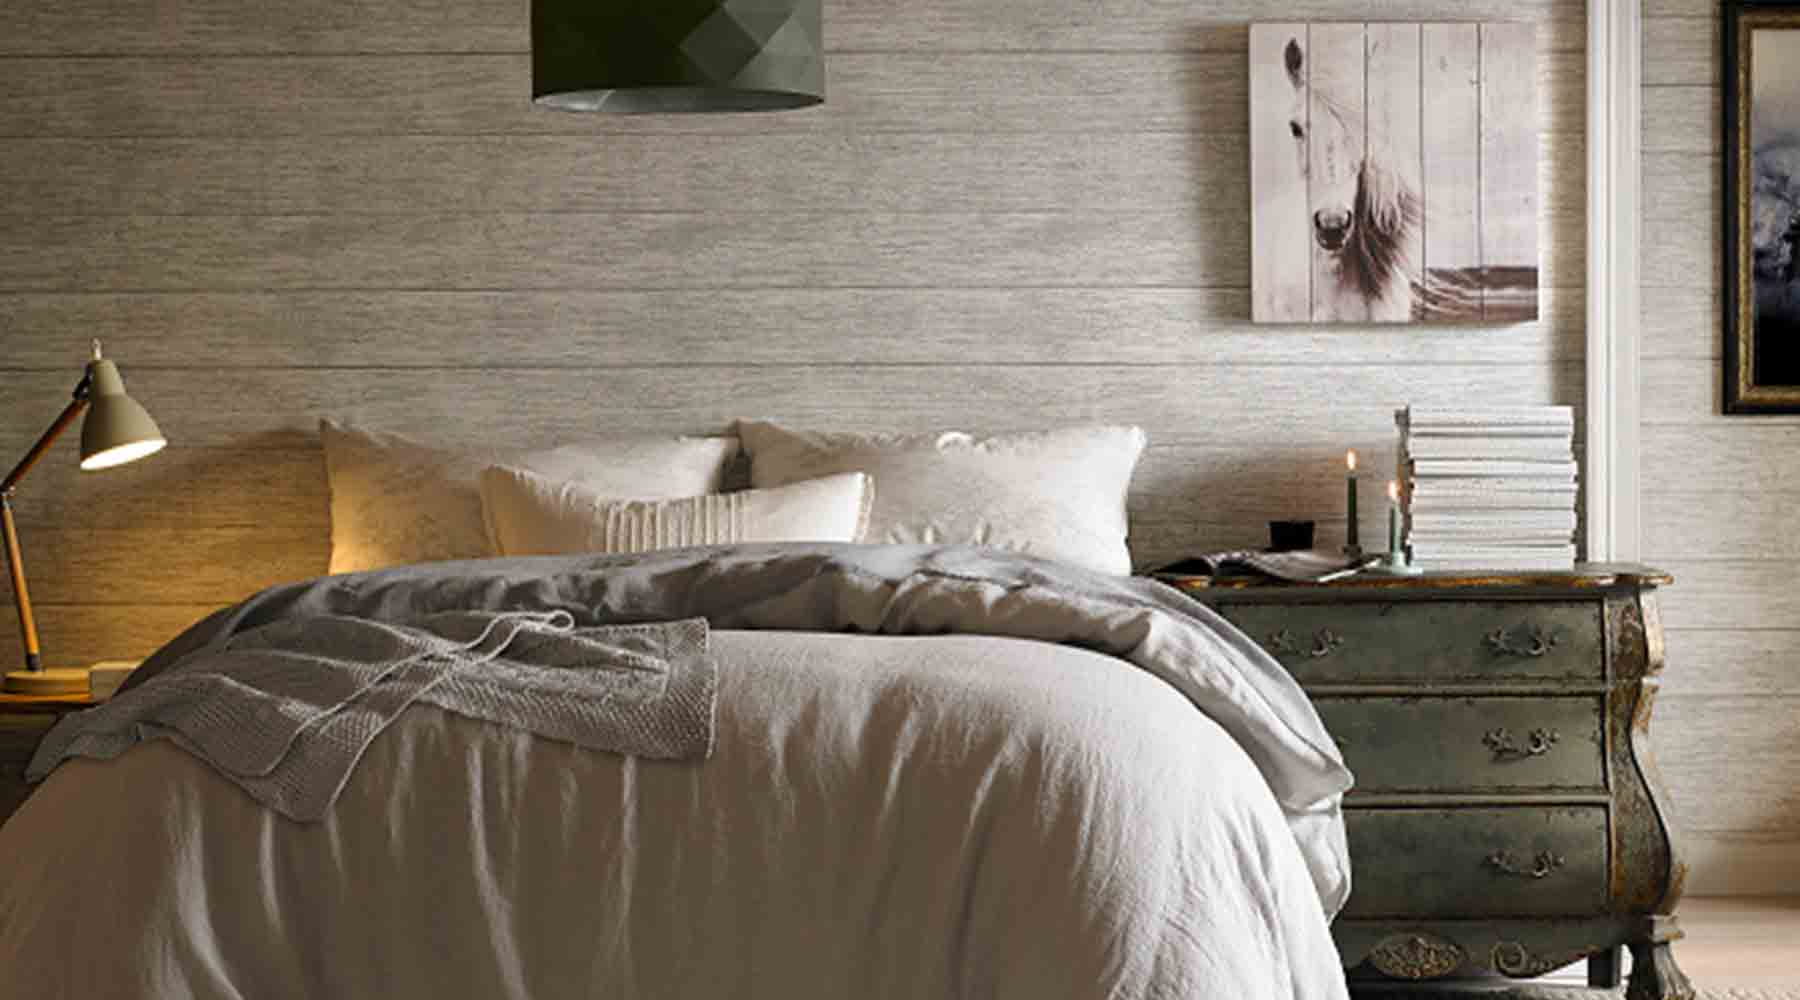 Top Tips for a Simplistic Modern Bedroom